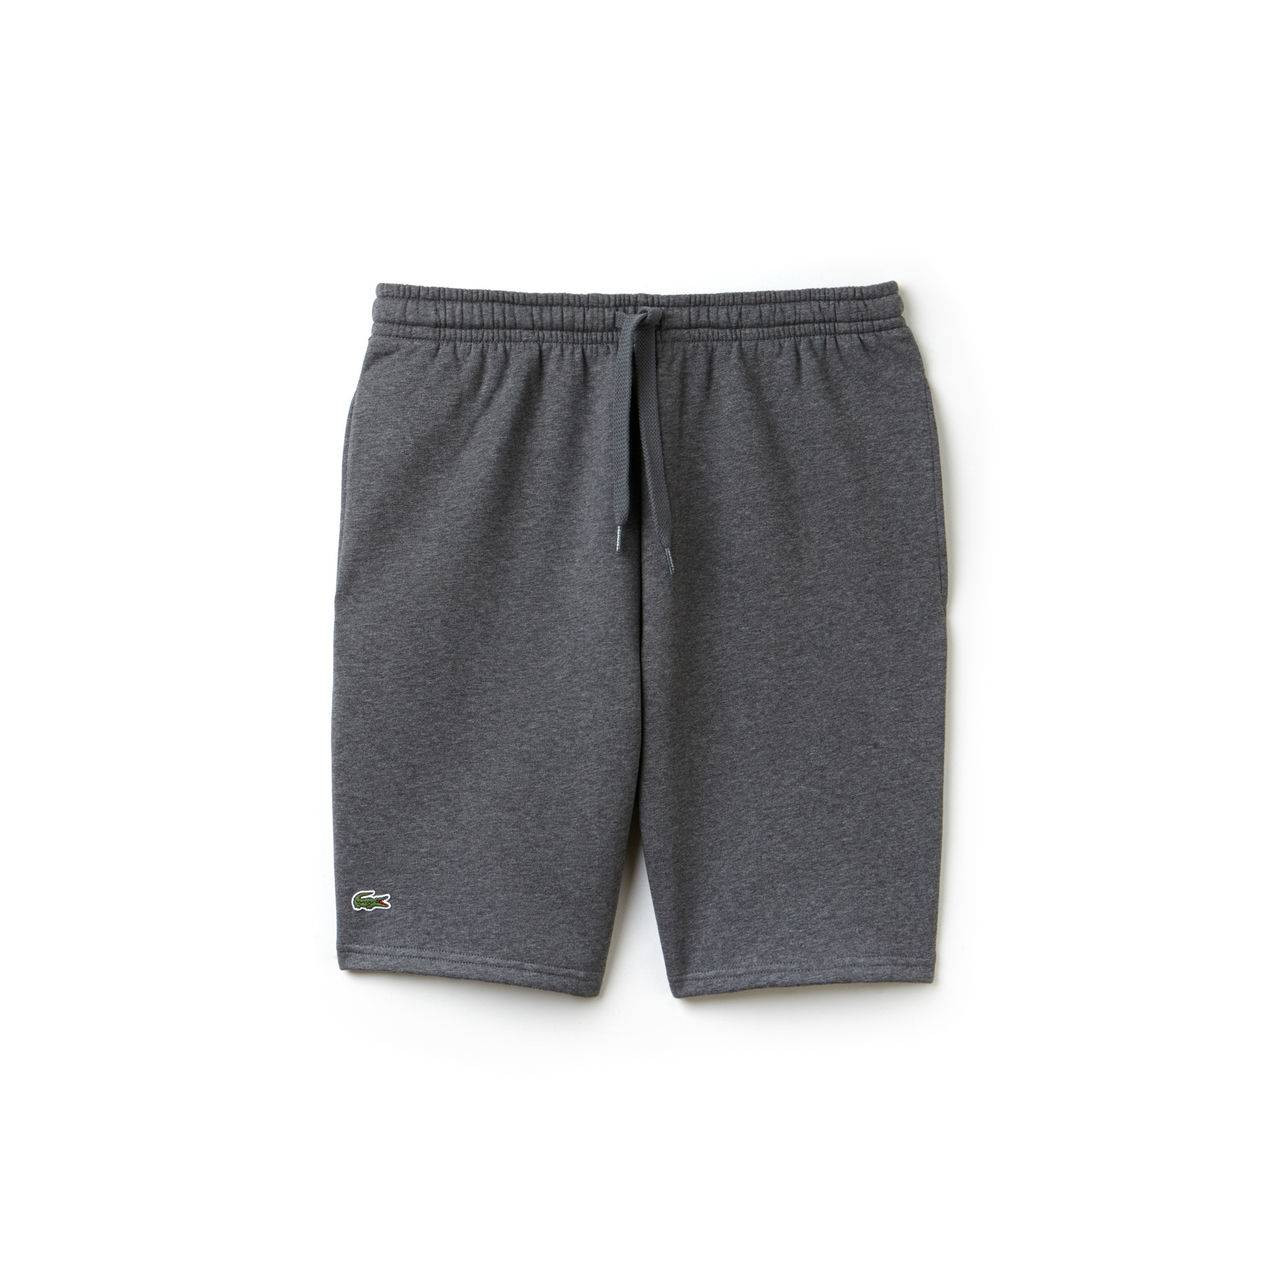 RefGh2136 Short Lacoste 00050 Downtownstock com wnkNO80PX